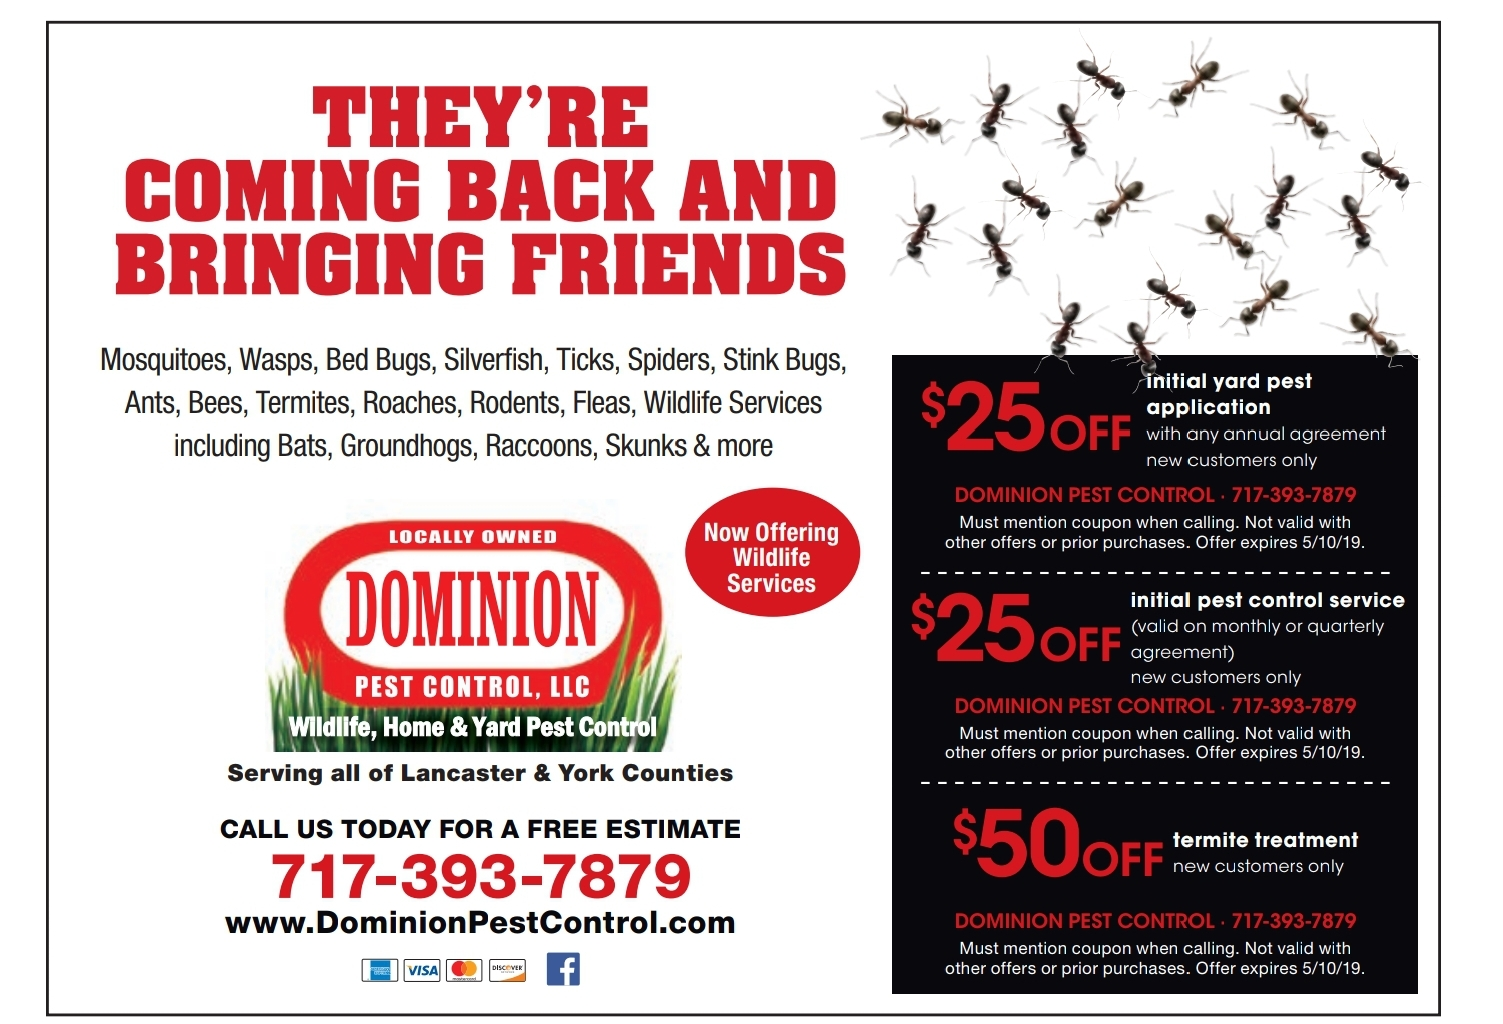 dominion pest control spring coupon